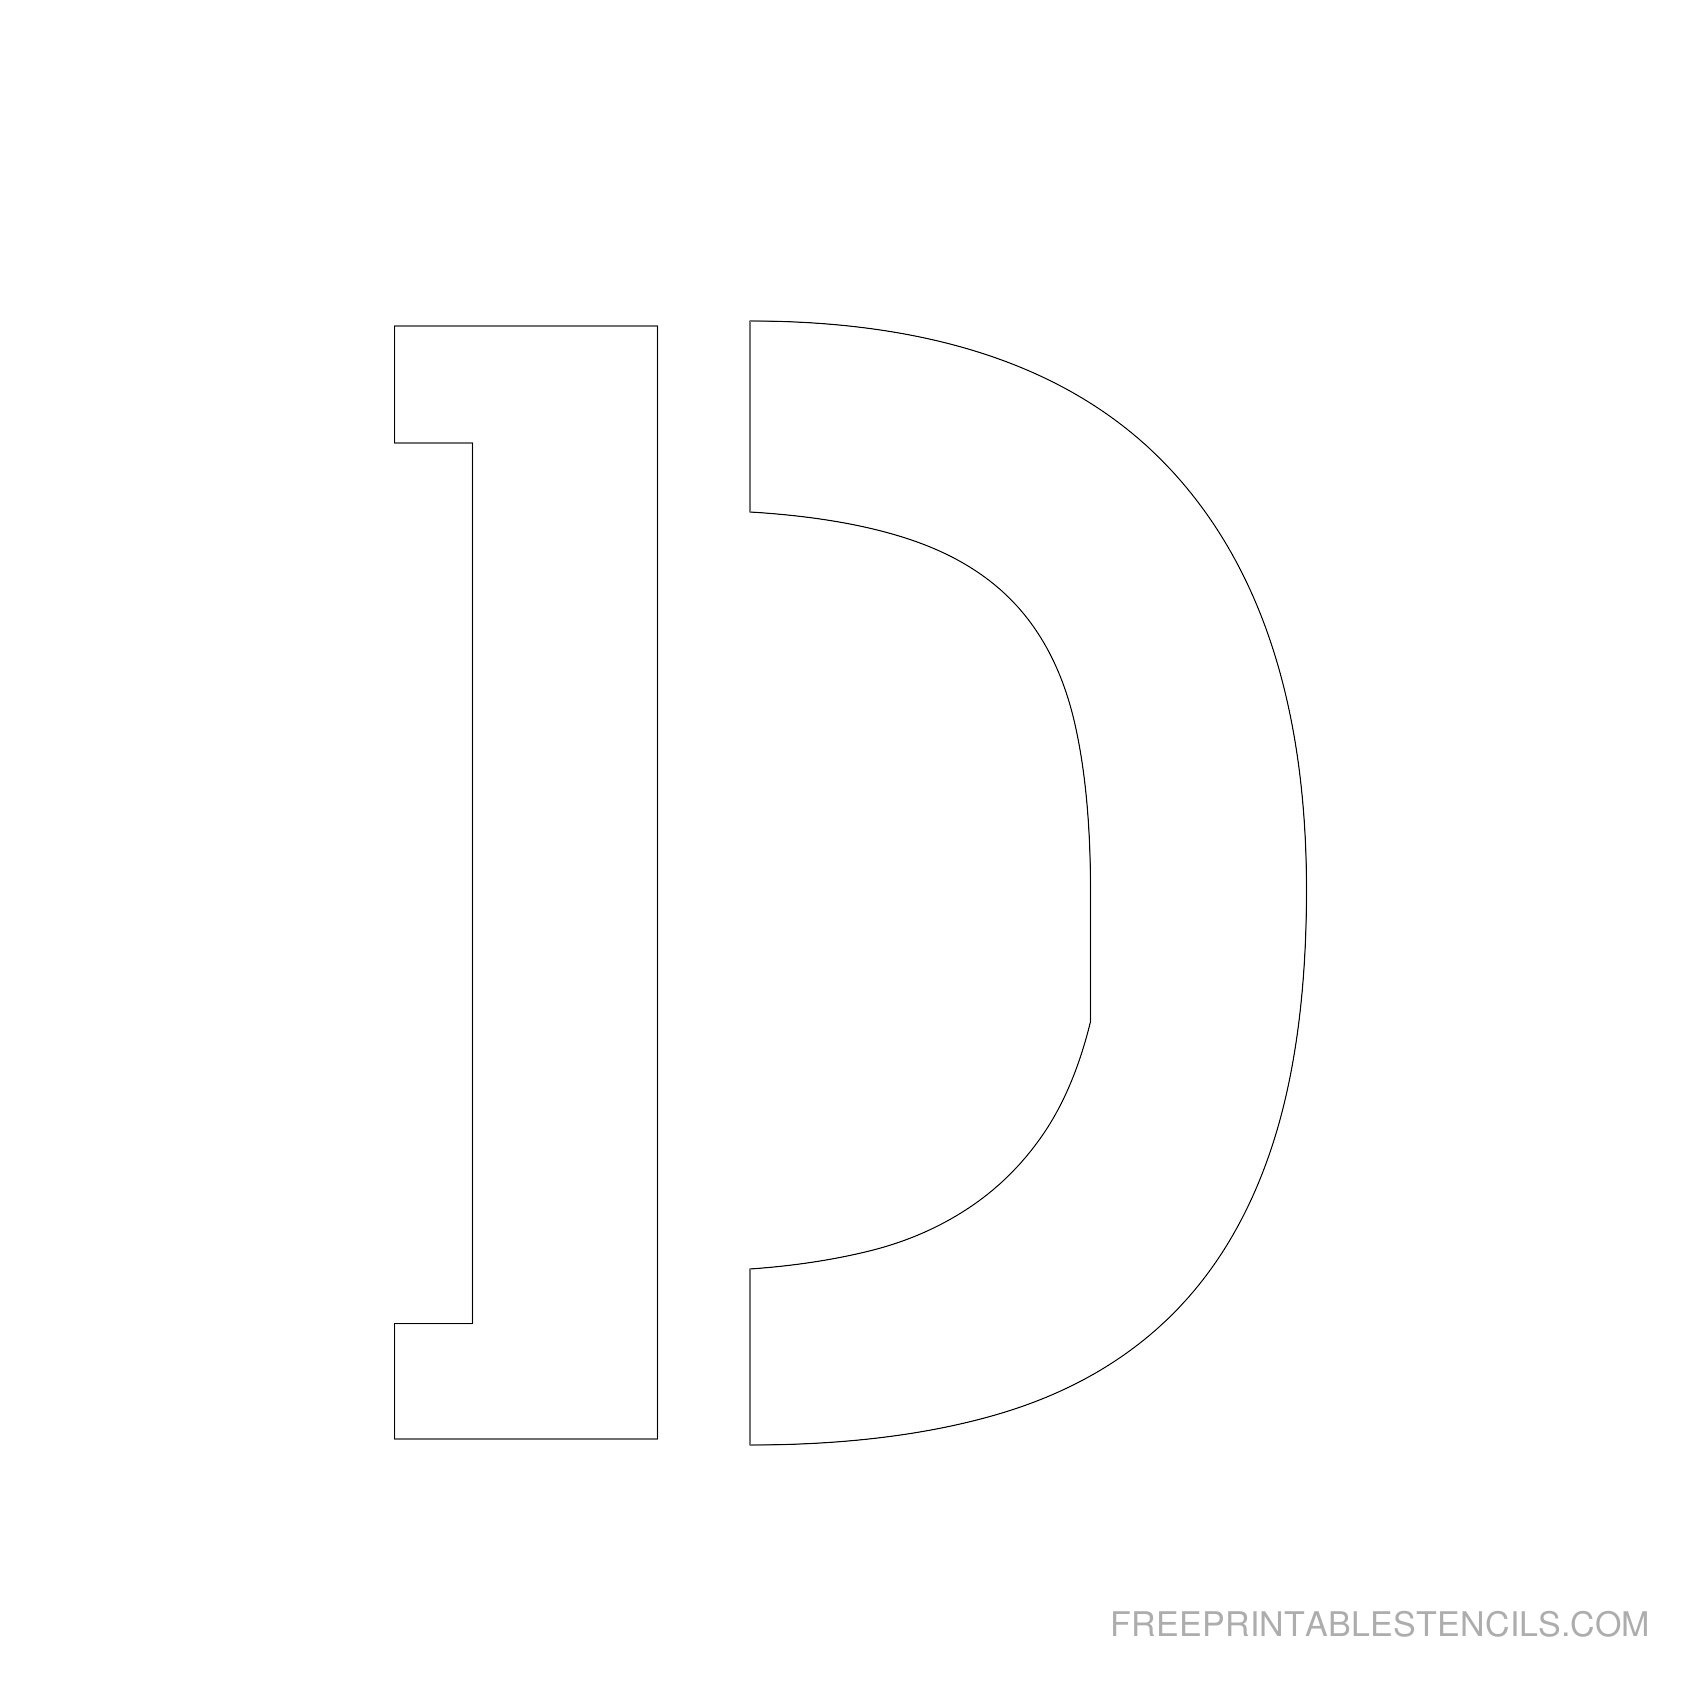 Printable 5 Inch Letter Stencils A-Z | Free Printable Stencils - Free Printable Letters Az